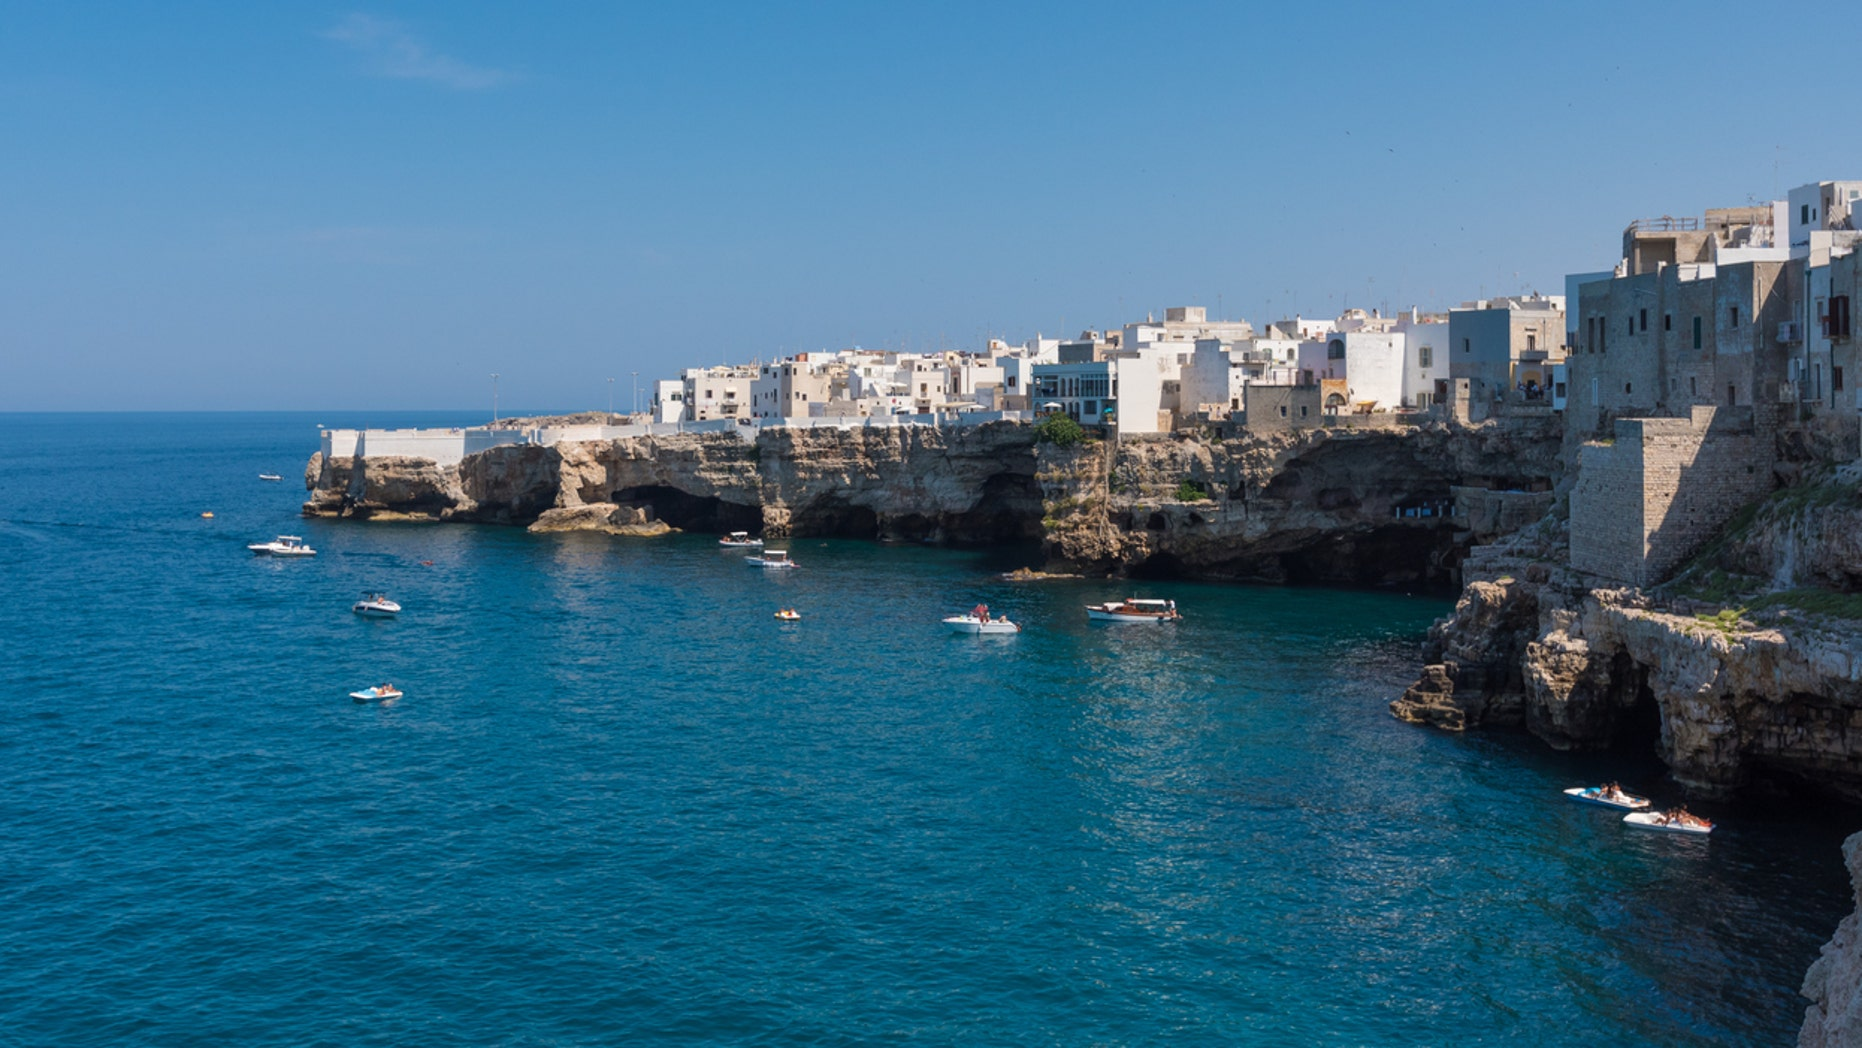 The famous sea town in province of Bari, southern Italy. The village rises on rocky spur over the Adriatic Sea, and is known tourist attraction.